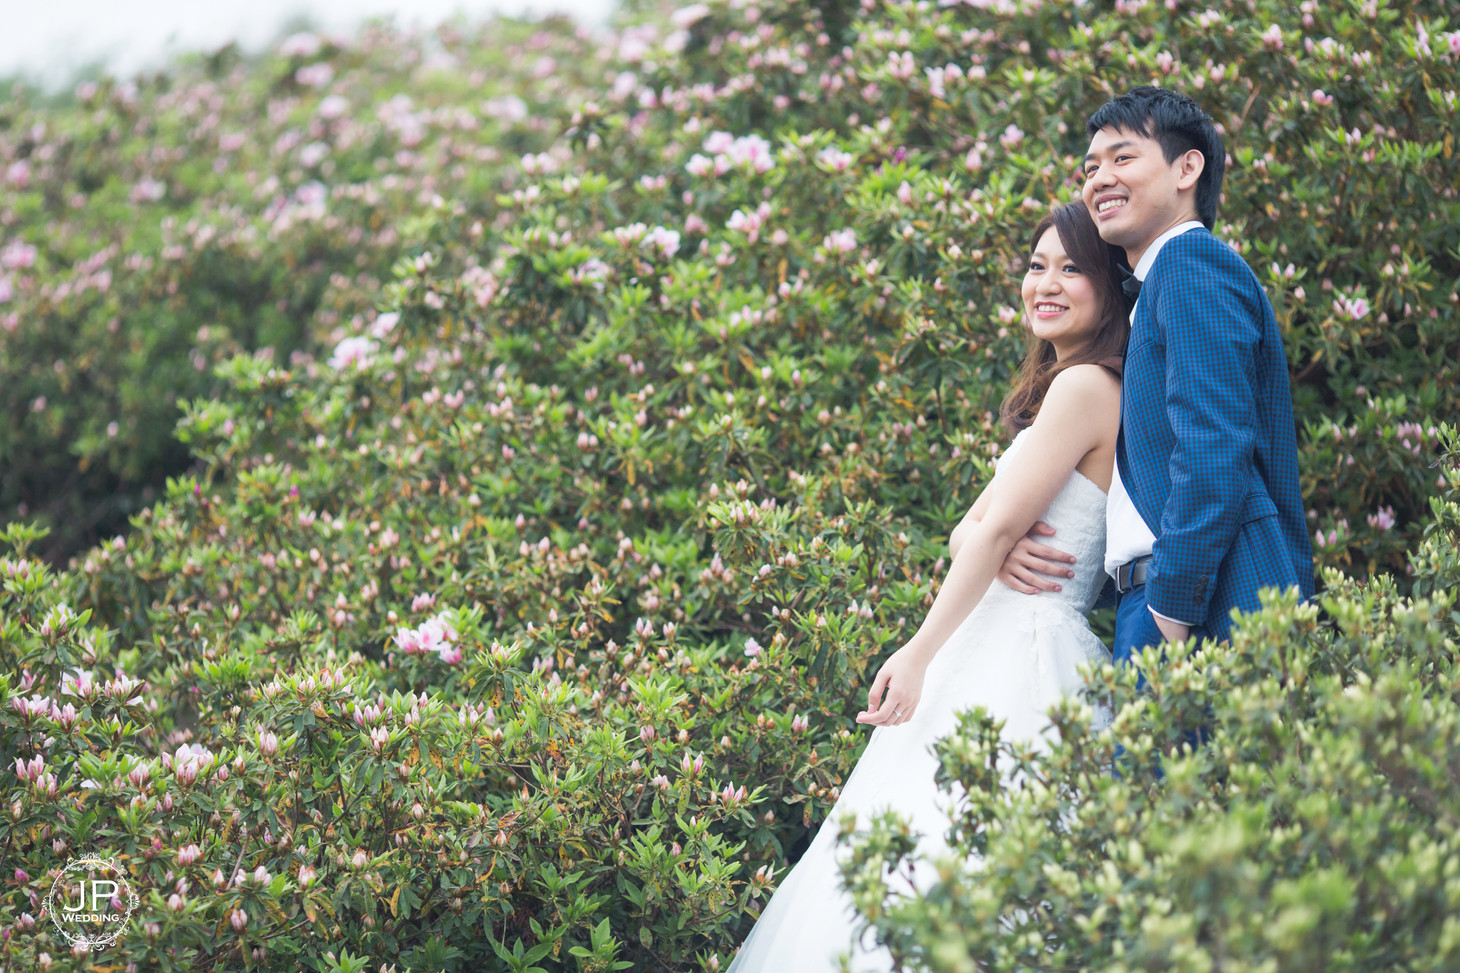 JP_Wedding-Japan_Prewedding_Photoshoot_Kanazawa-3.jpg